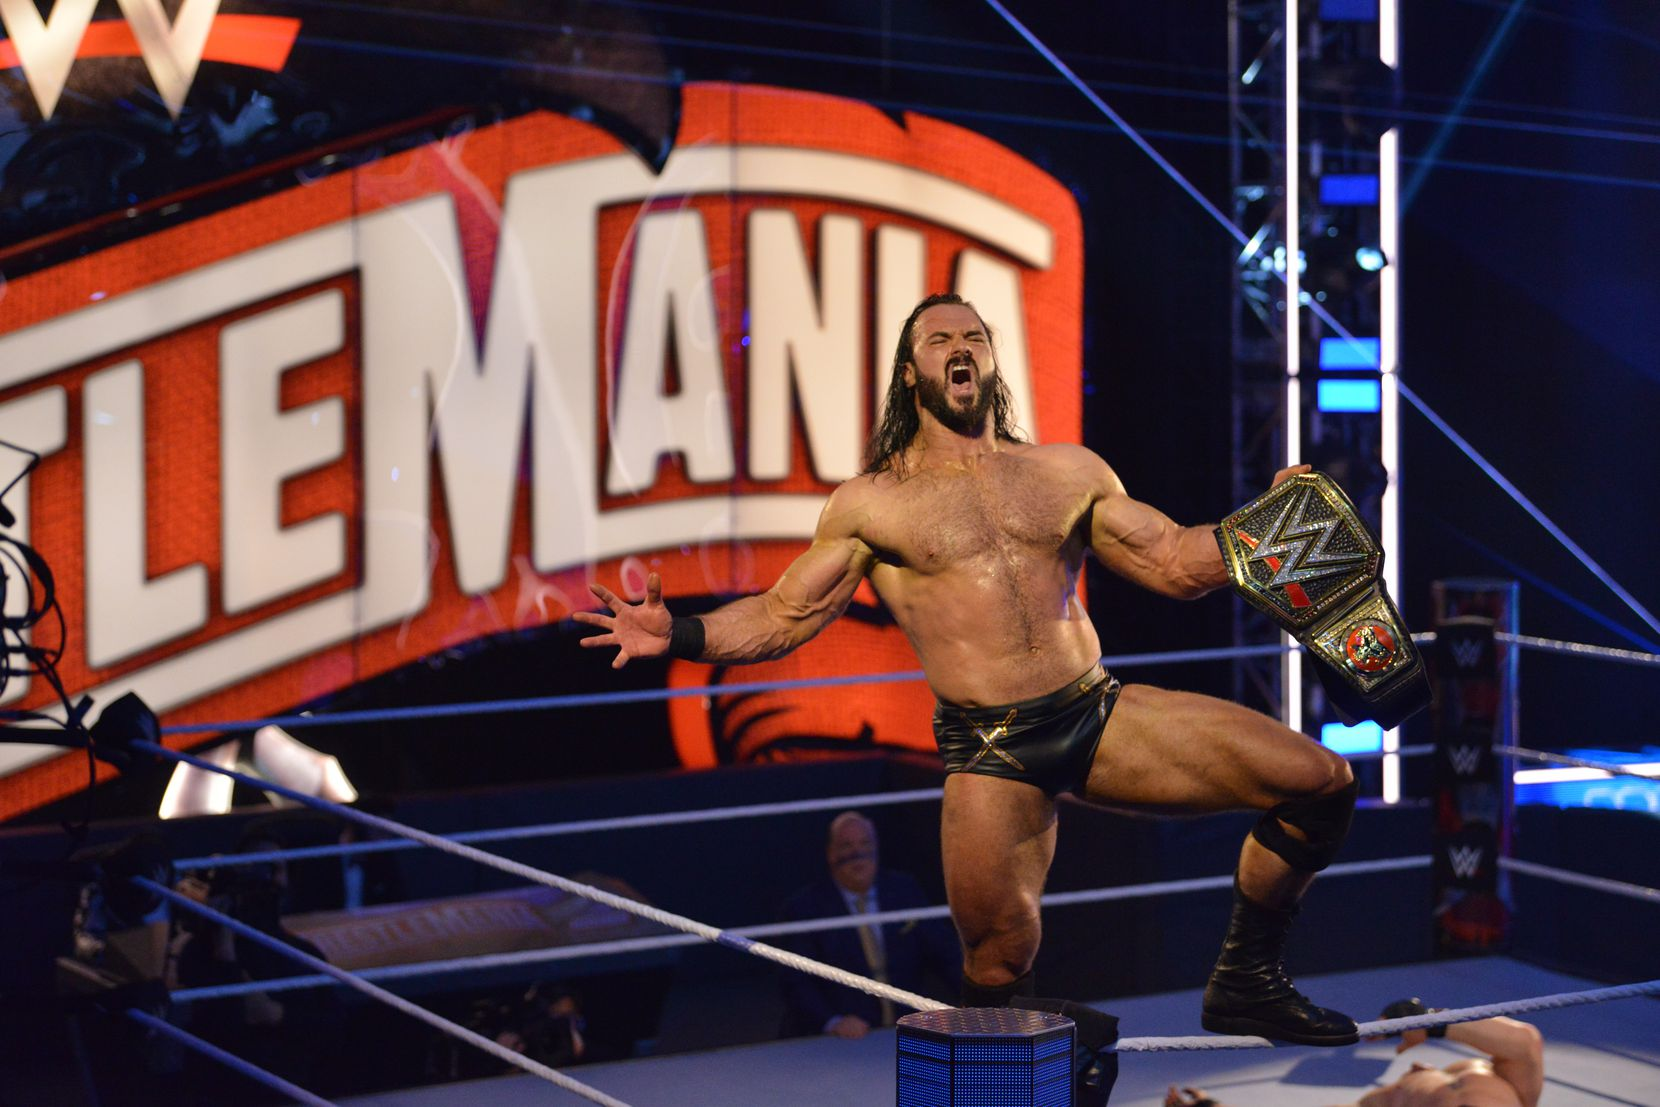 Drew McIntyre celebrates winning the WWE championship after defeating Brock Lesnar at WrestleMania 36. Photo courtesy of WWE.